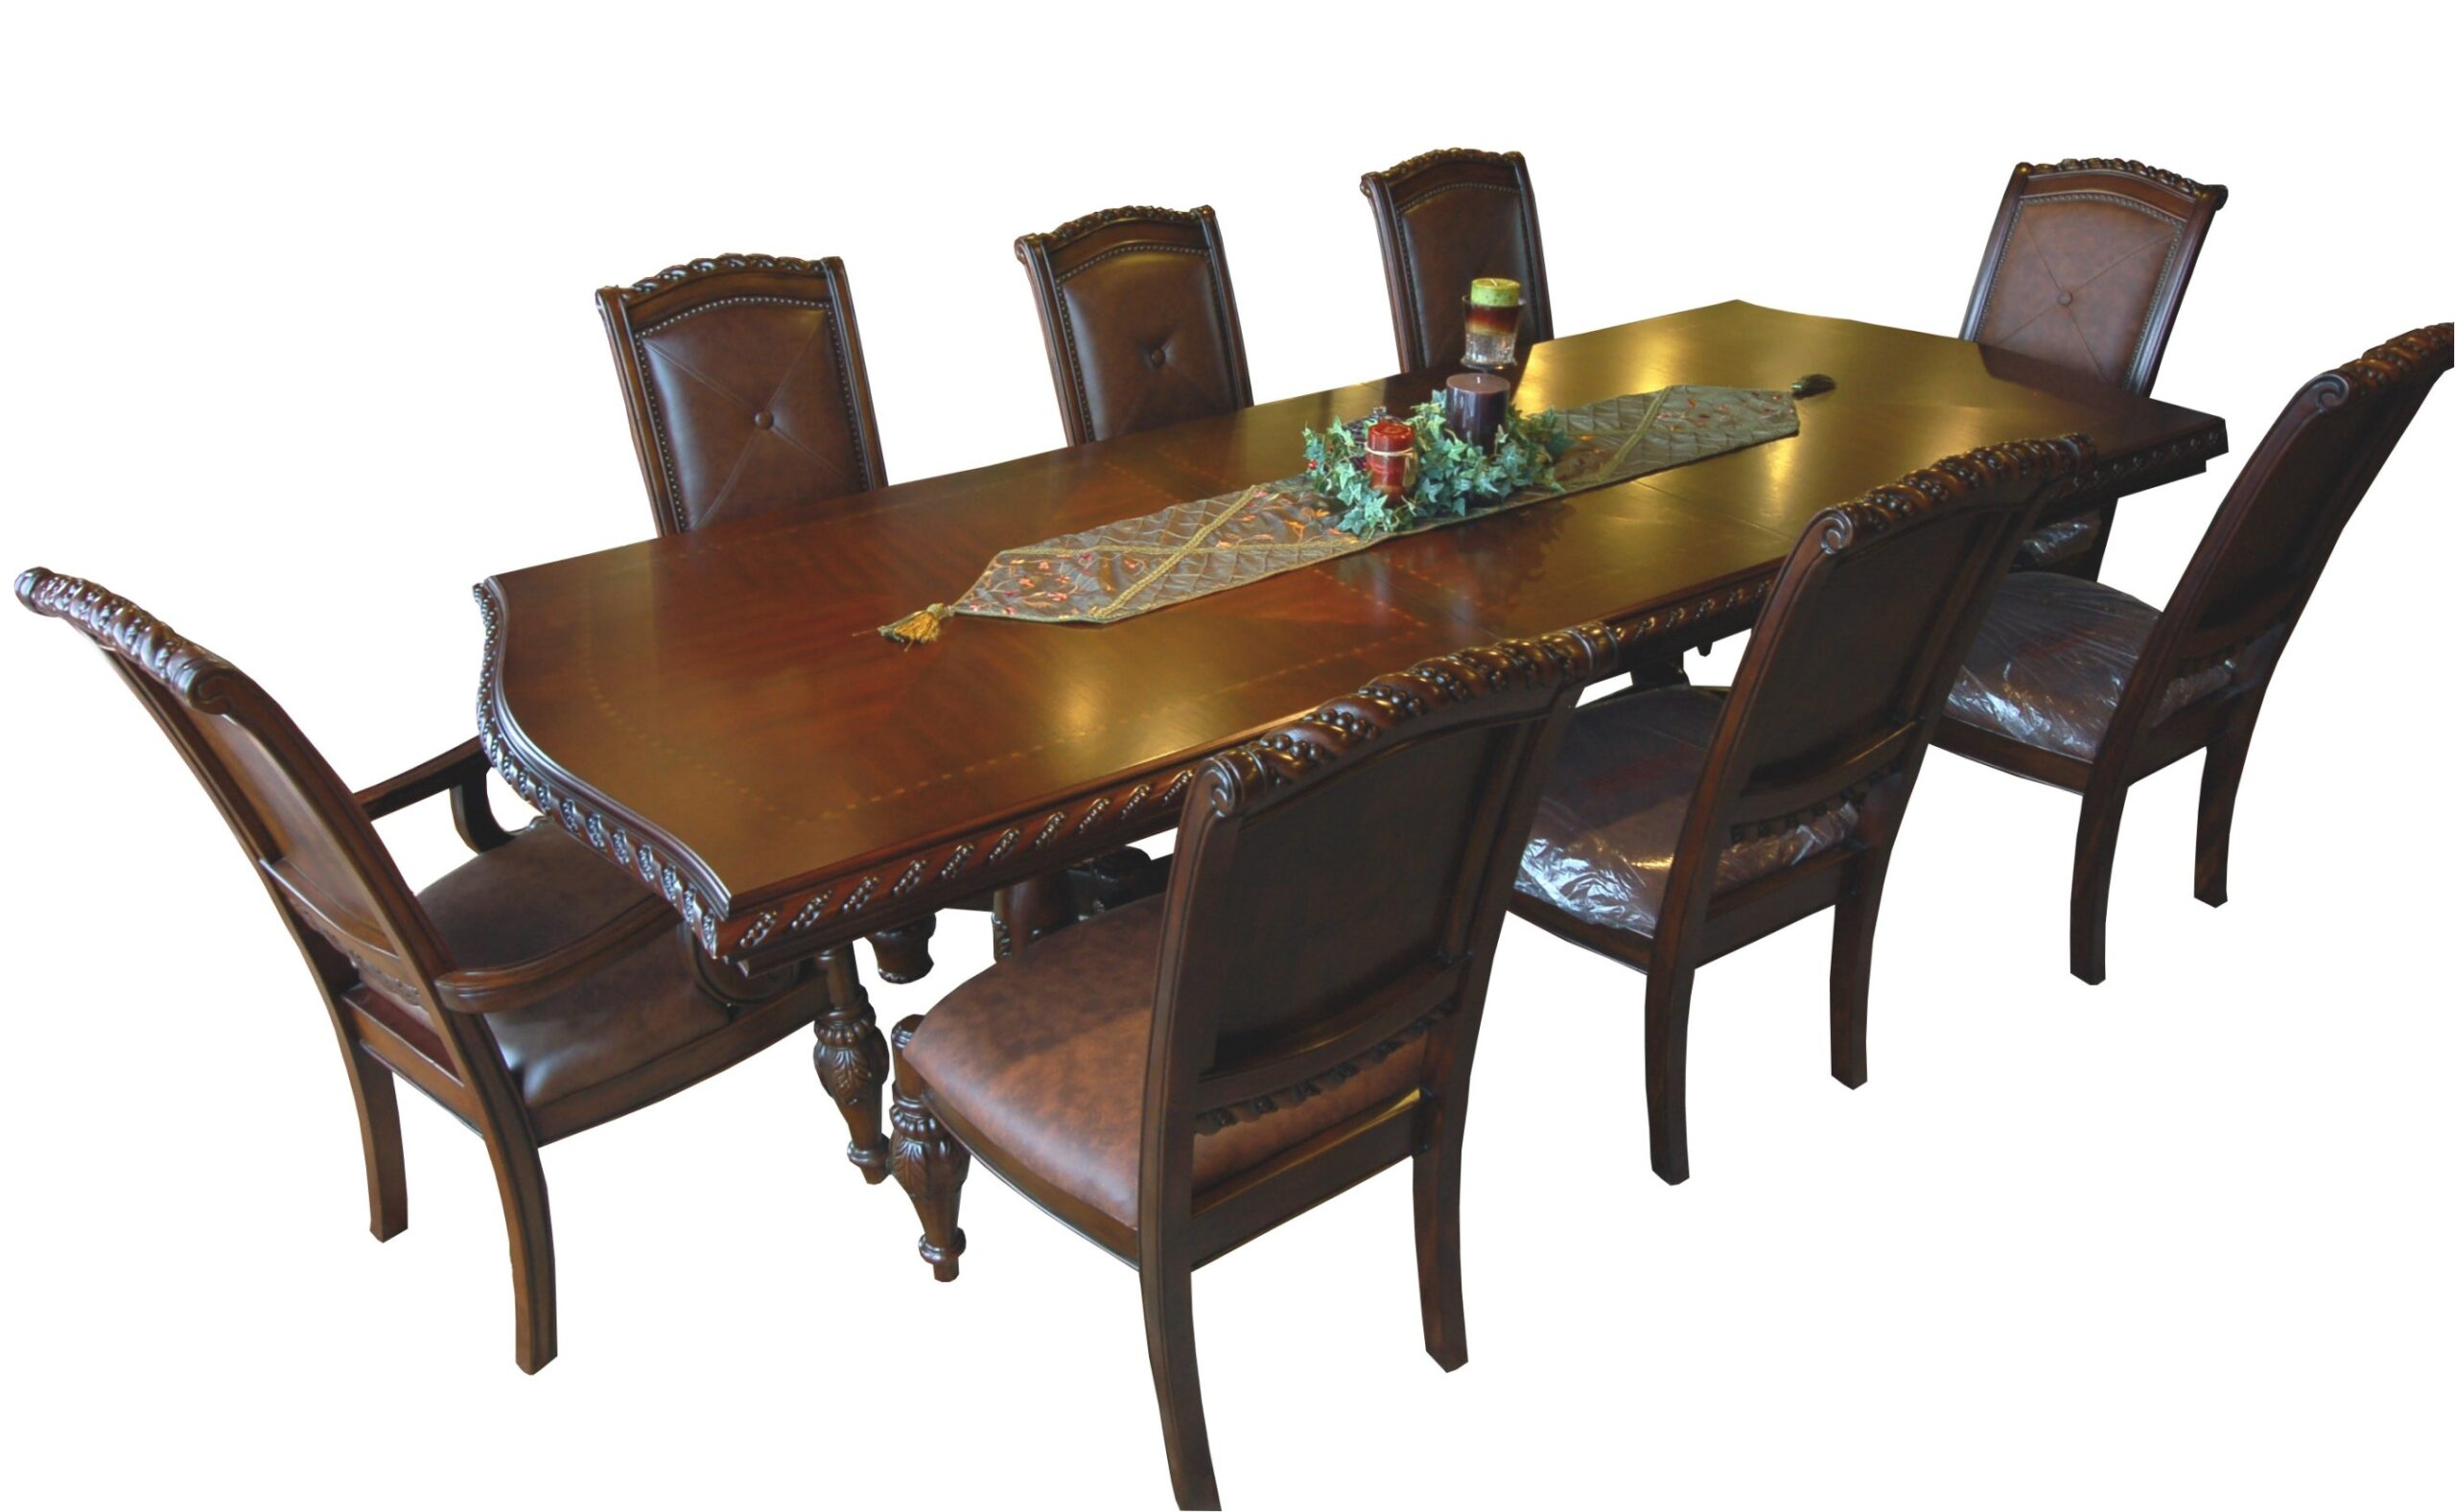 Dark Mahogany 9 Piece Dining Set with regard to 9 Piece Dining Set